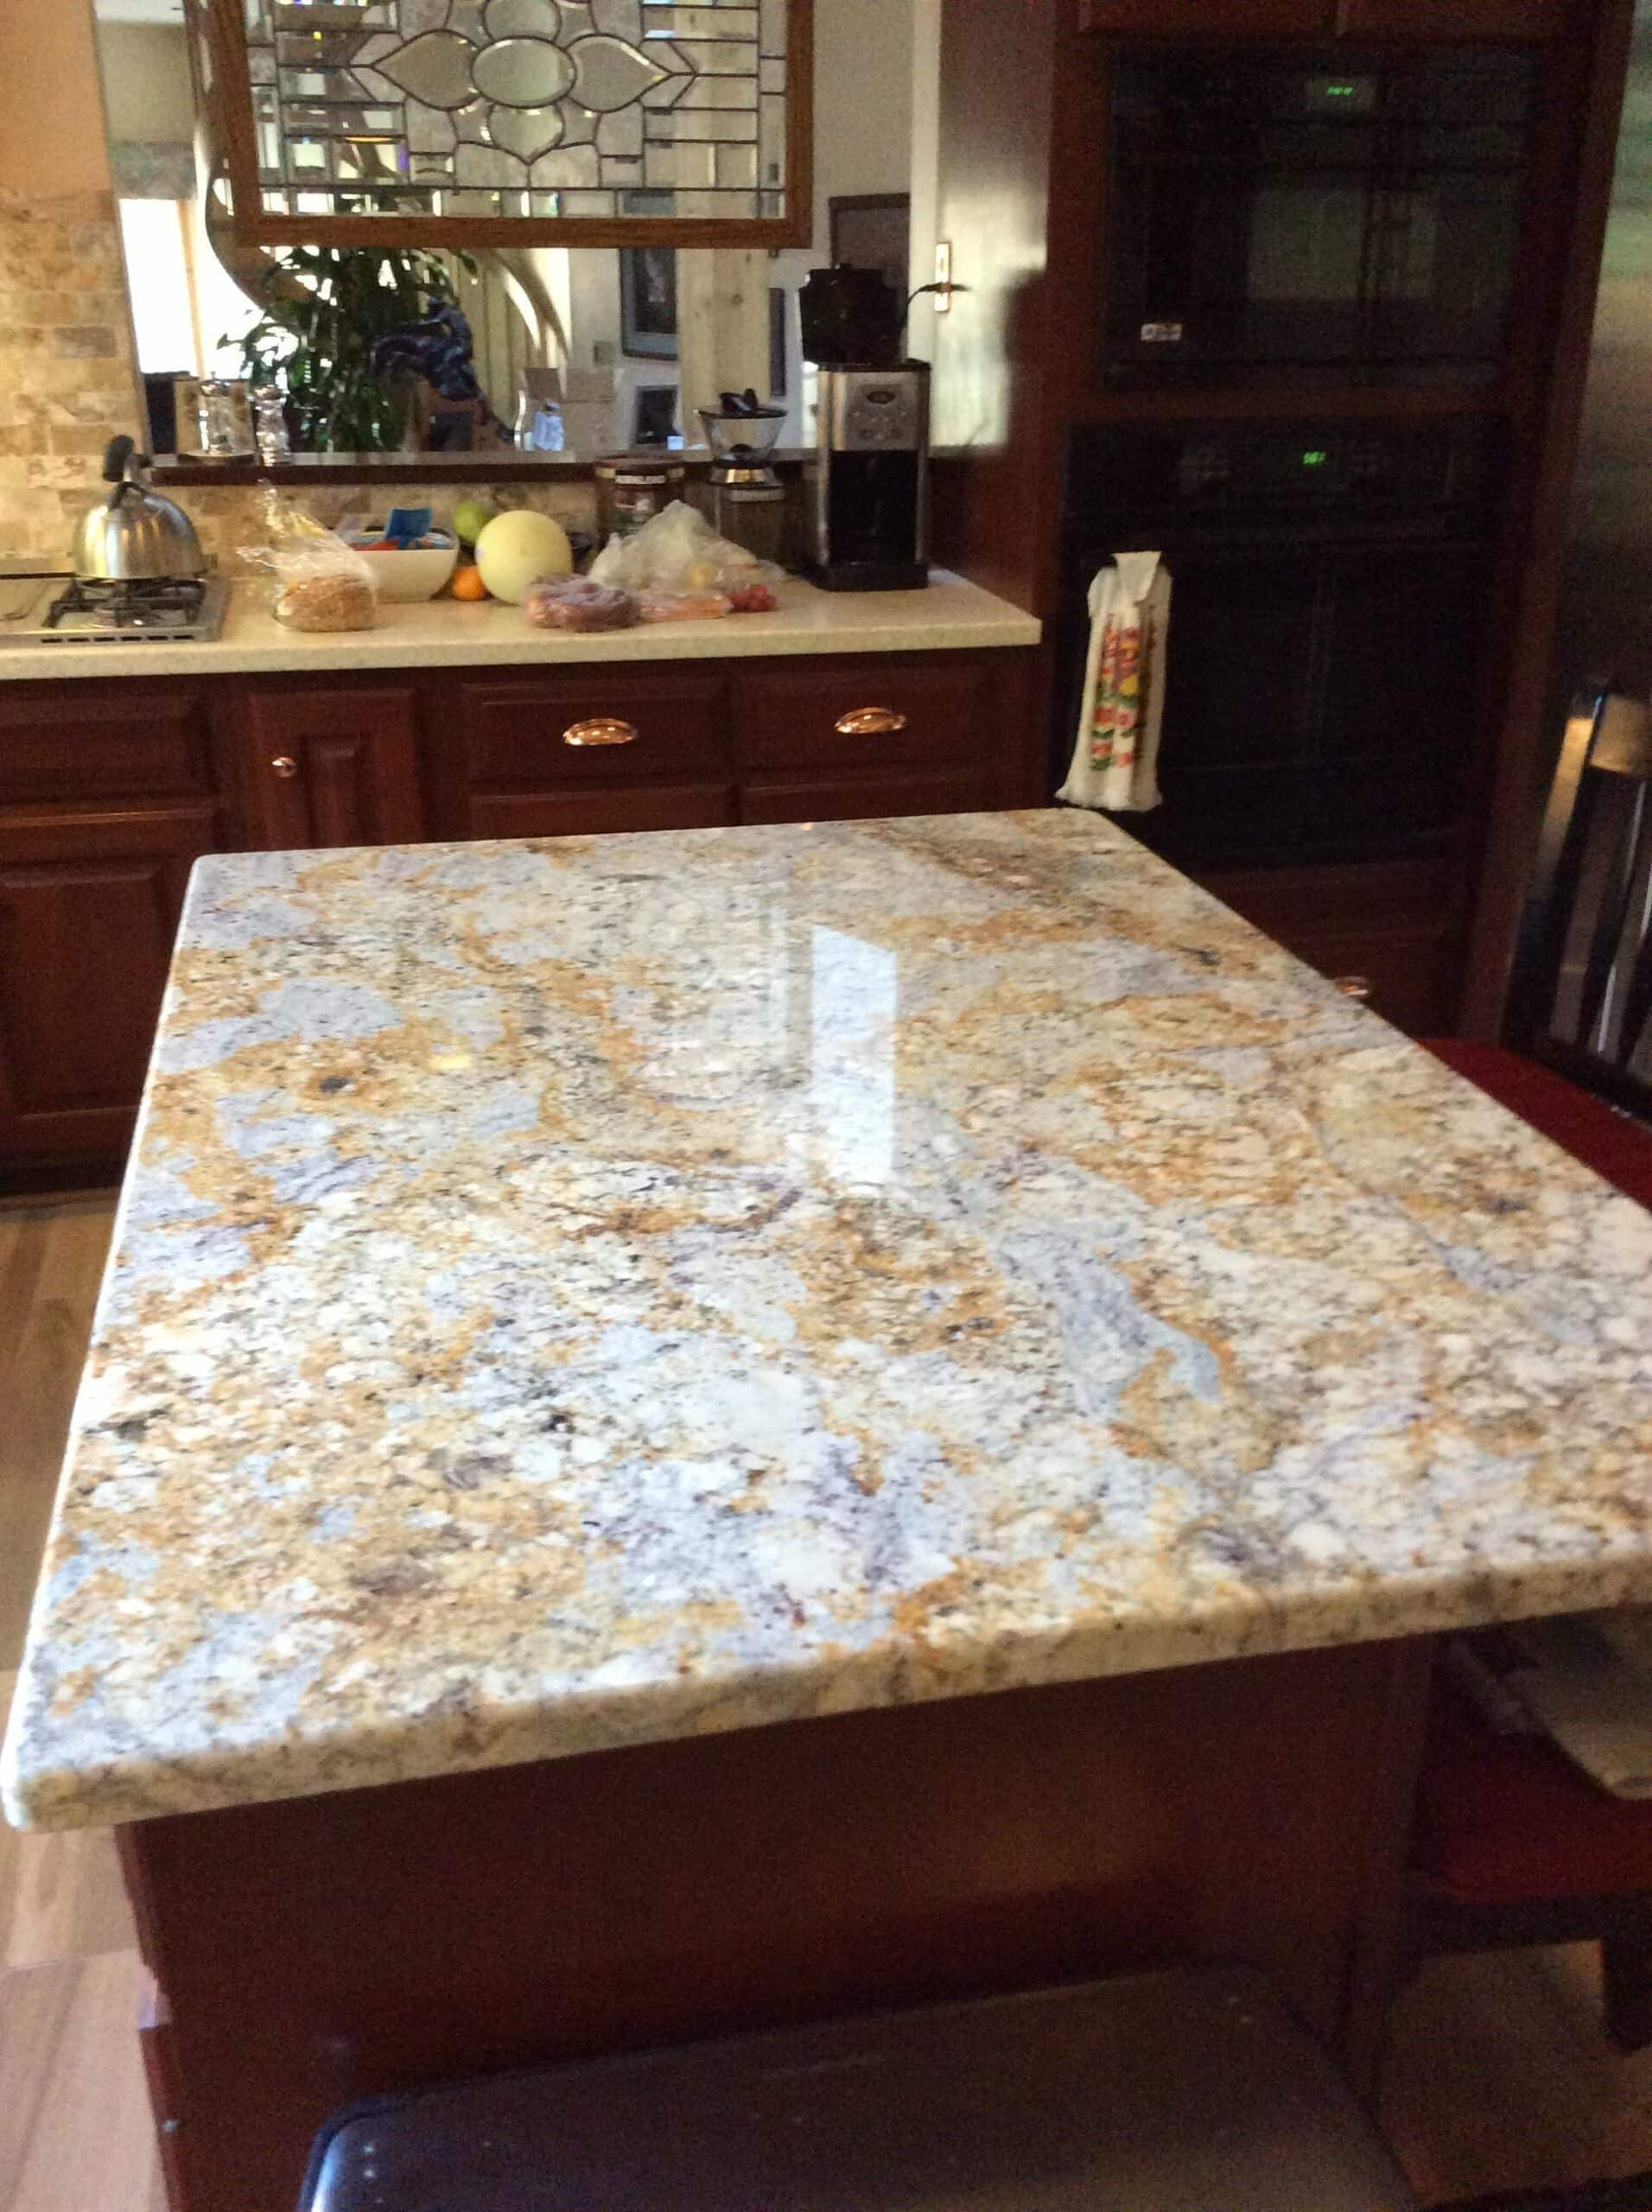 sinks kitchen tall garbage can remodel projects-granite & corian countertops ...